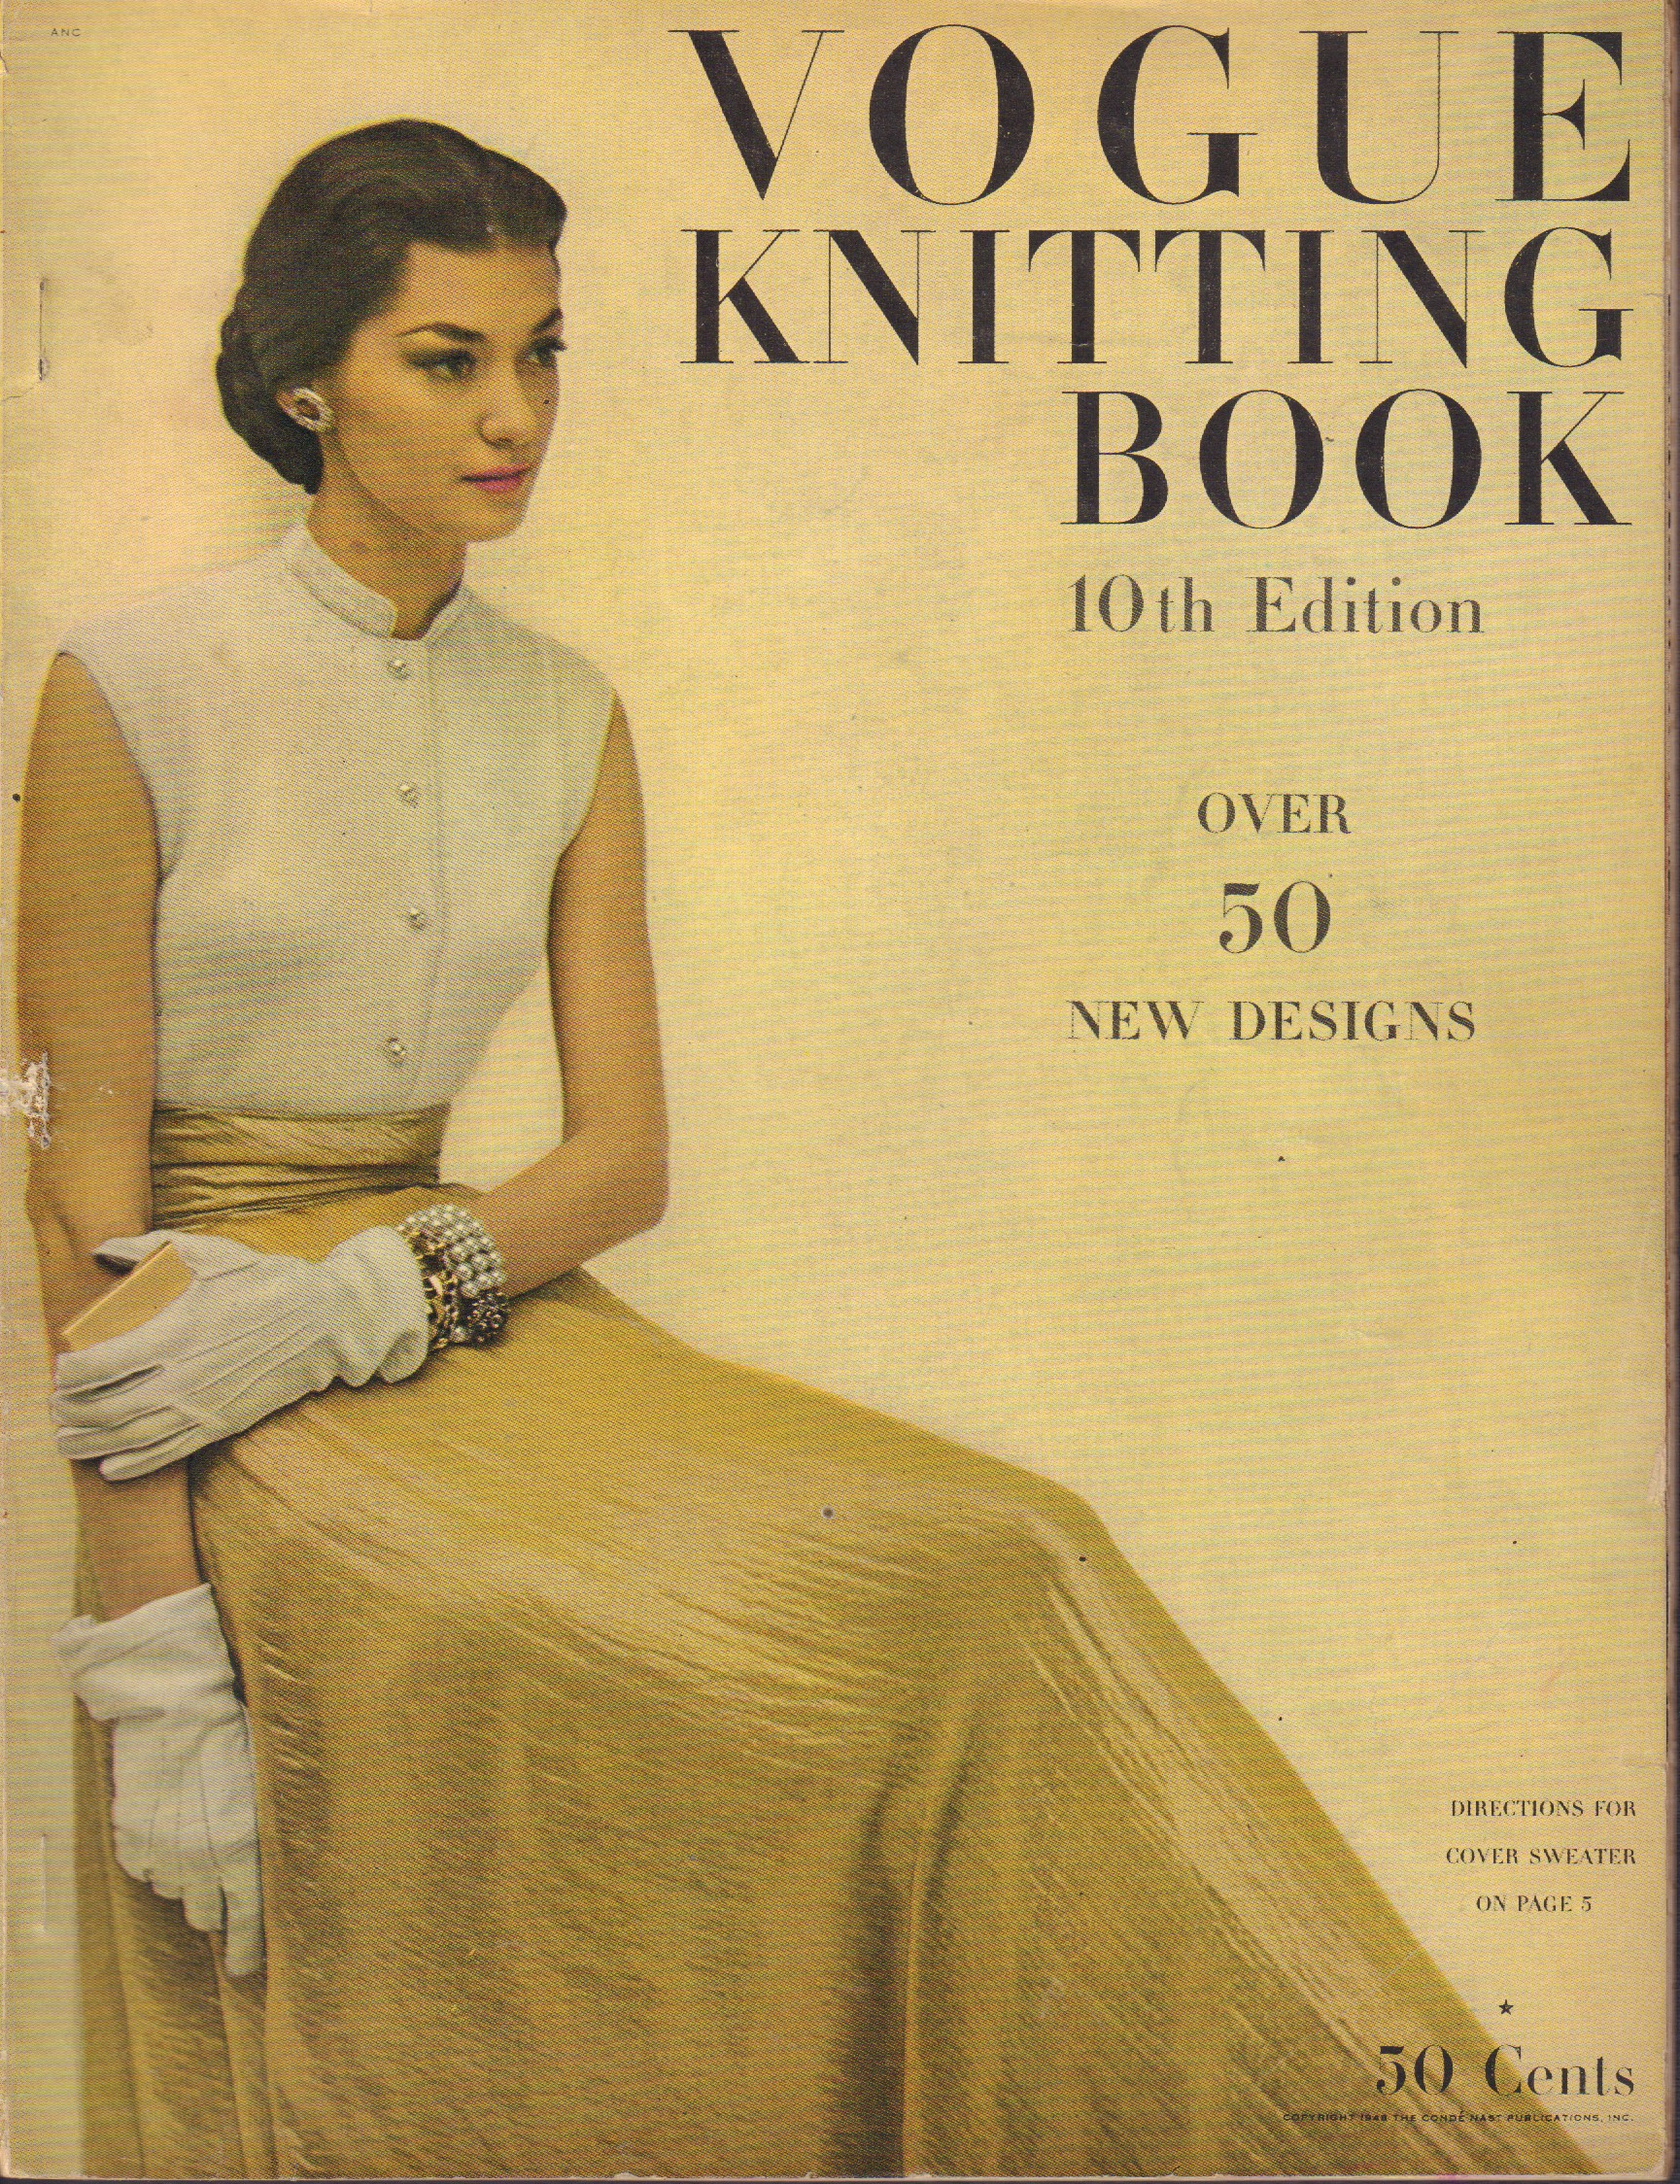 Image for Vogue Knitting Book - 10th Edition 1948